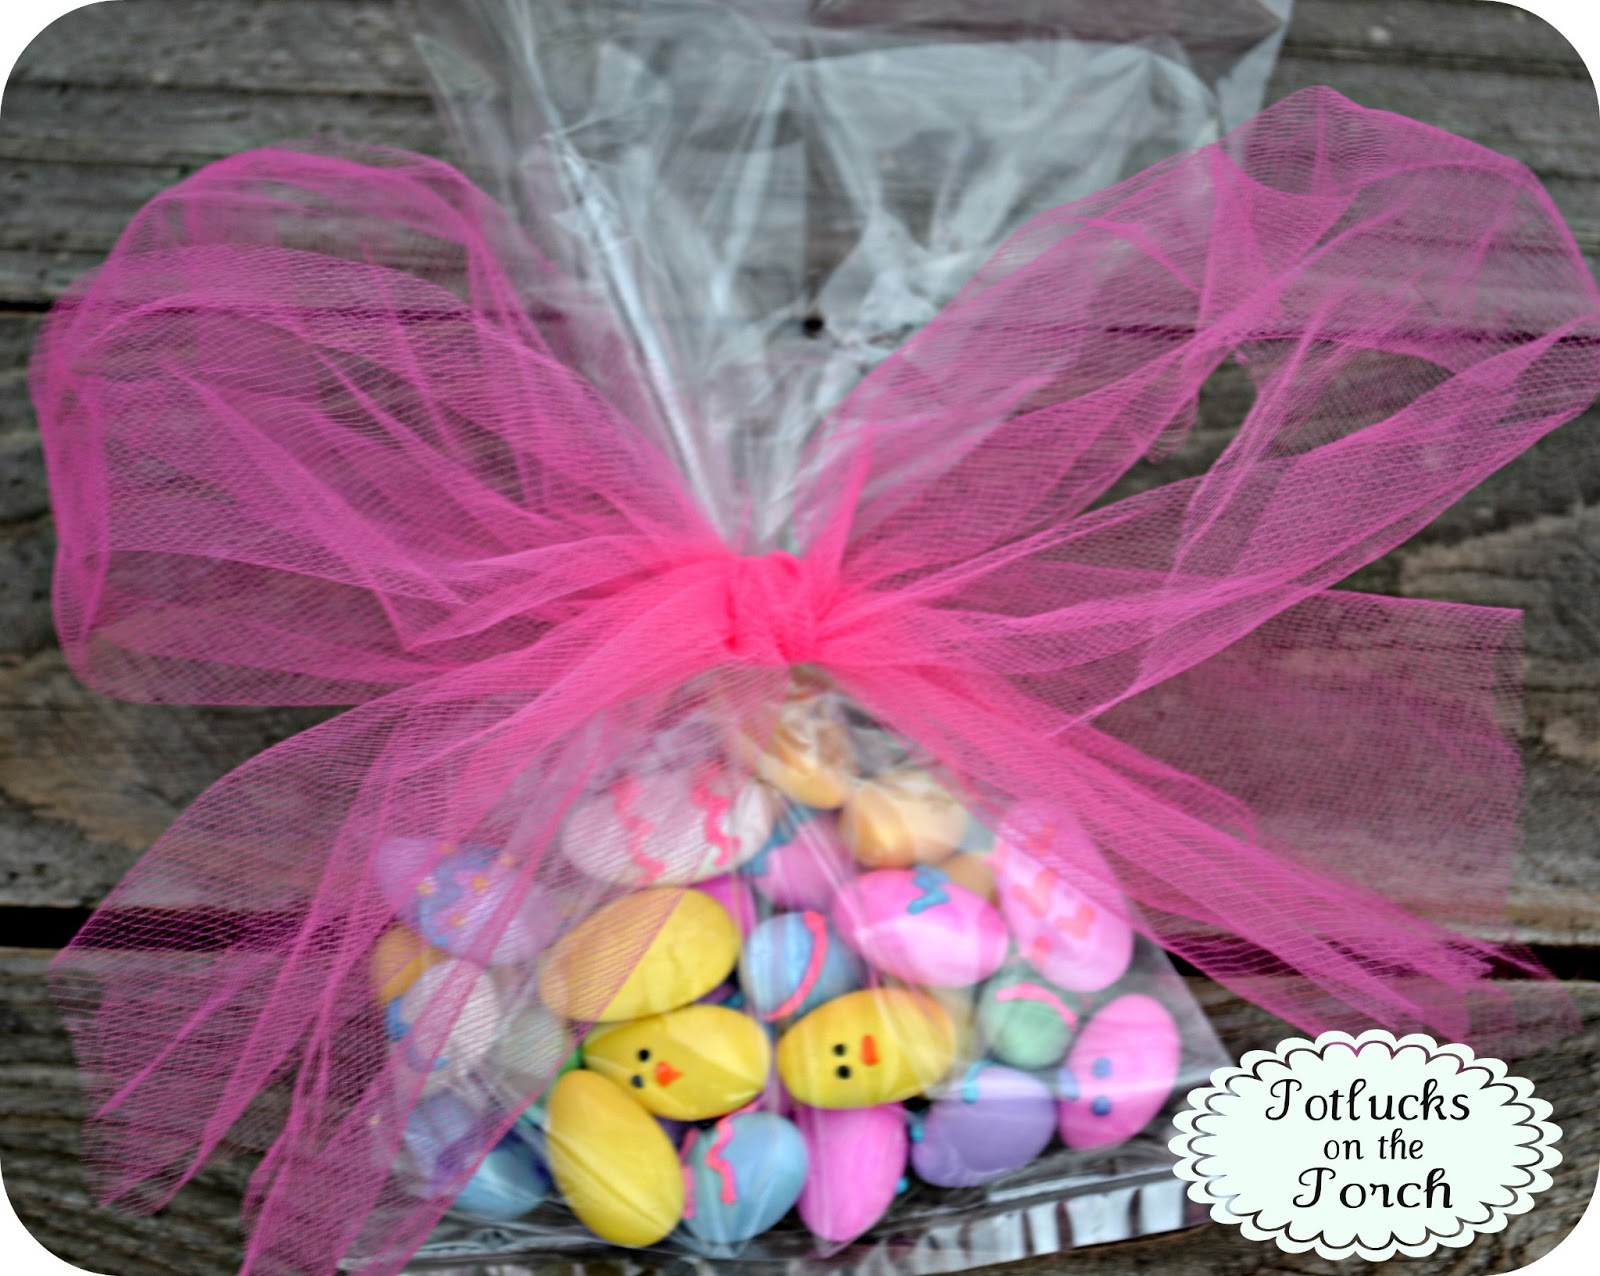 Potlucks on the porch jordan almond easter eggs chicks stick them in a cellophane bag and they make the funnest little easter gifts for a teacher friend your kids someone you visit teach the list goes on negle